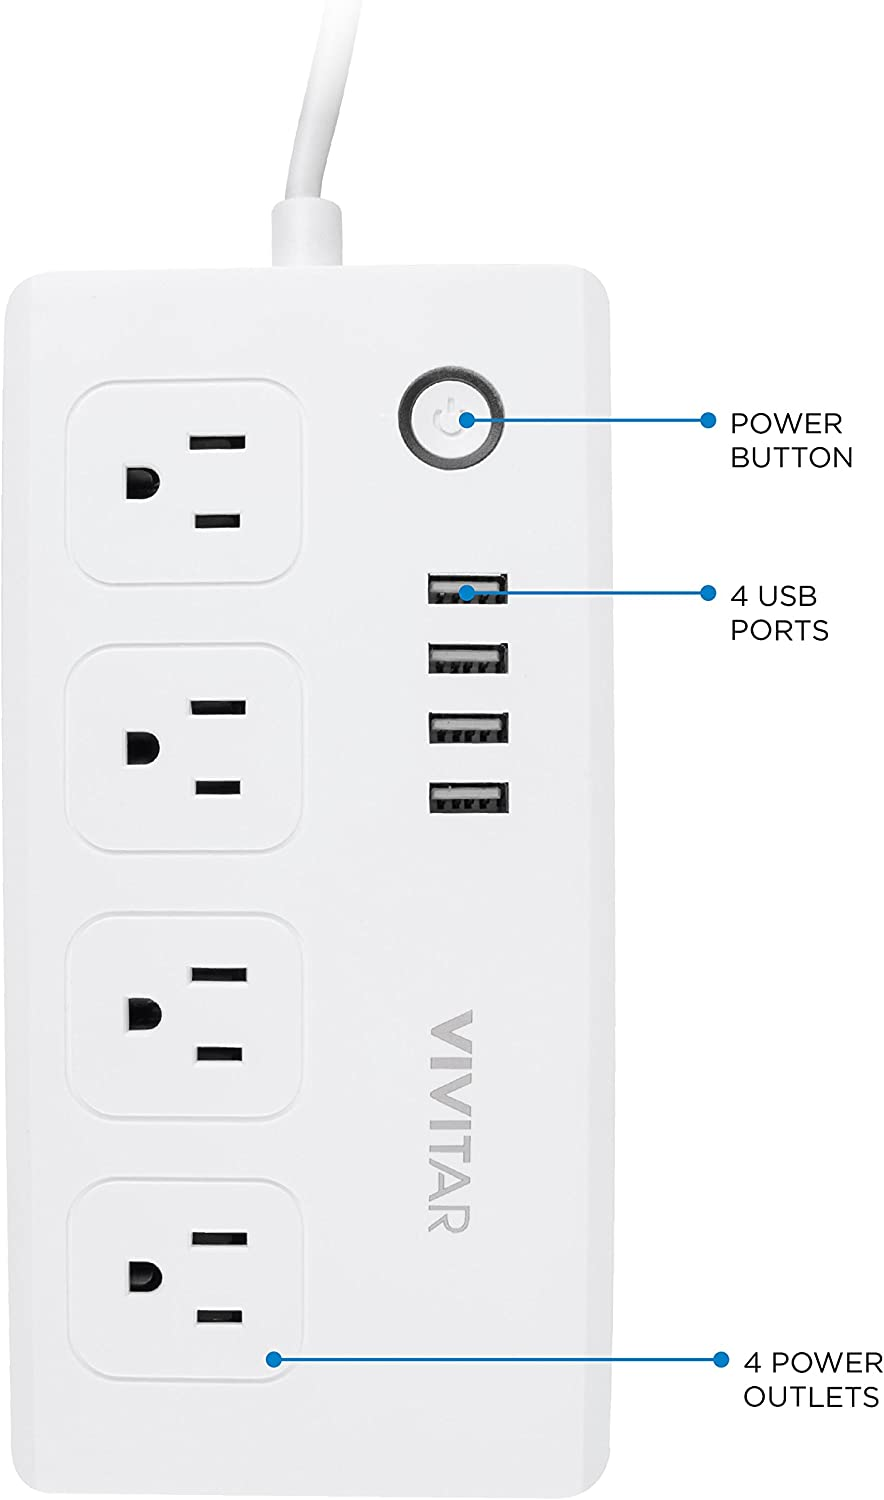 Vivitar Smart Home Power Strip, Multi Plug with 4 USB Ports (HA-1007)